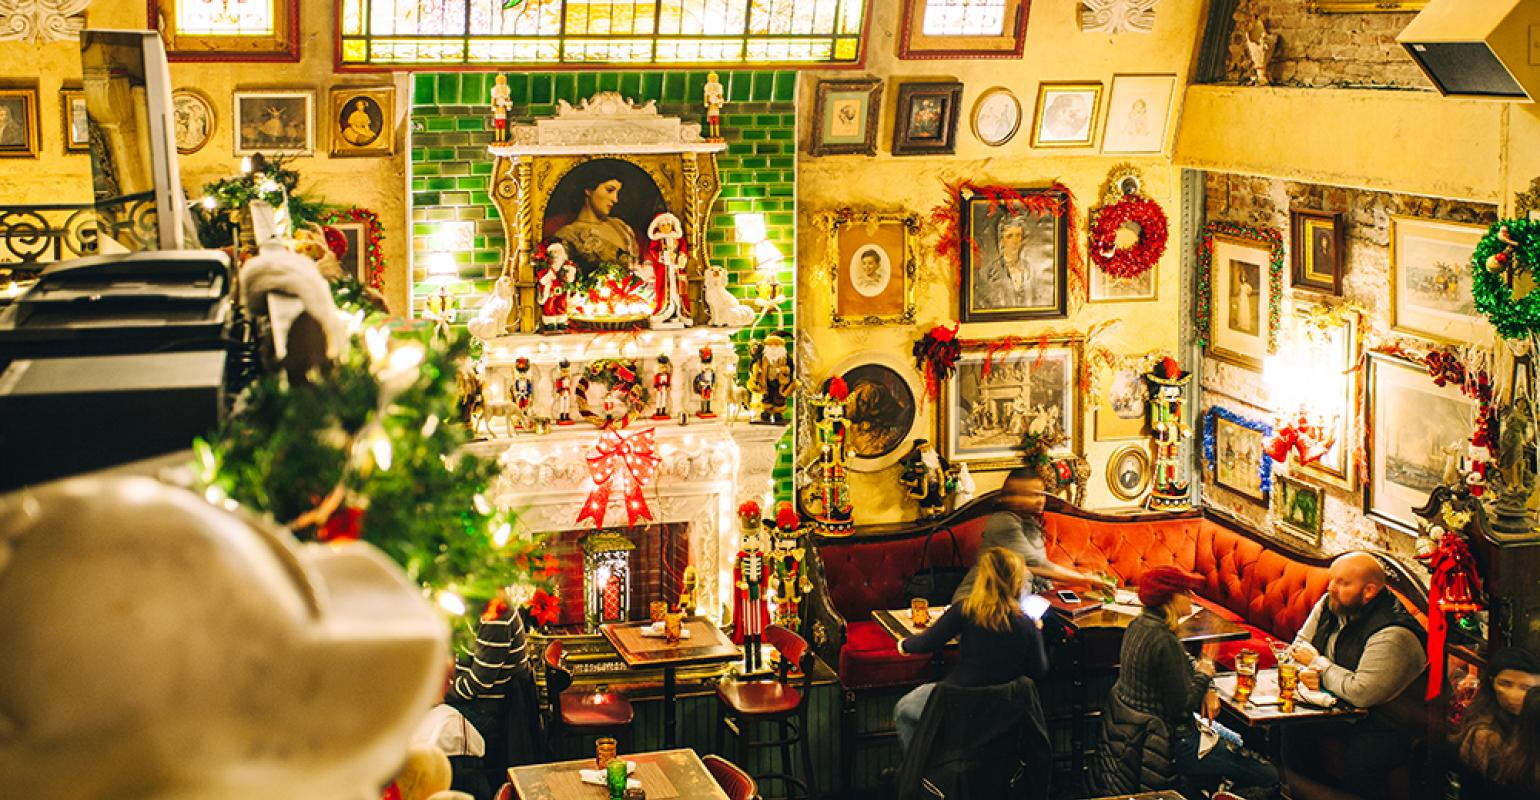 The Most Festive Restaurants To Get You